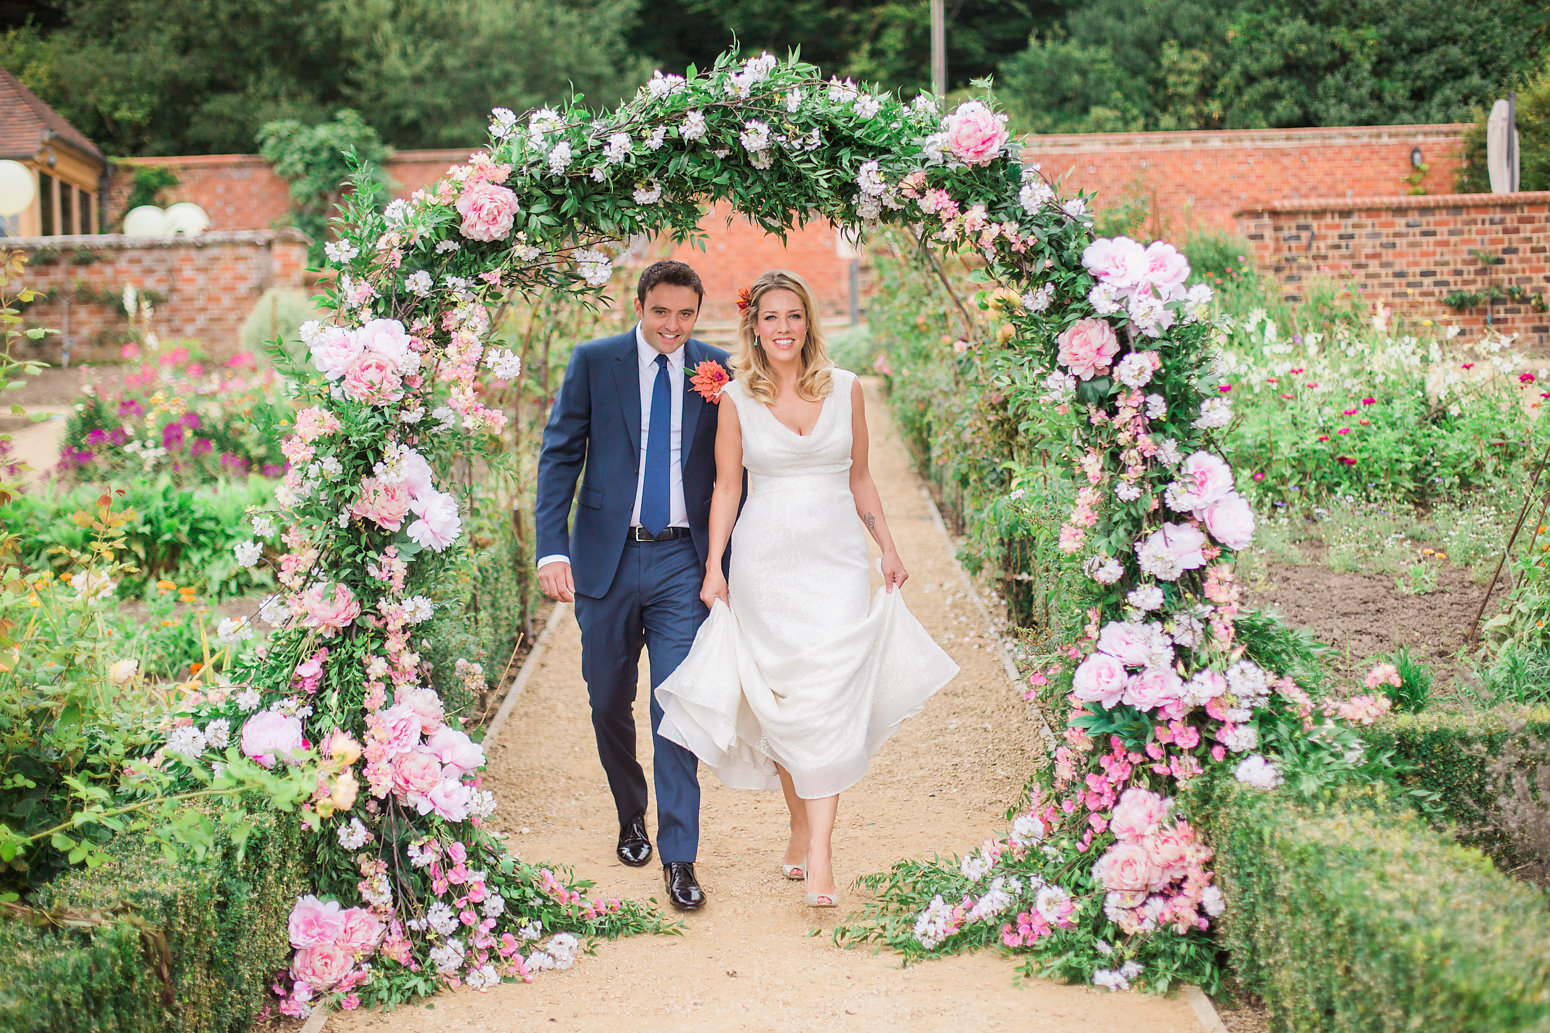 floral arch wedding inspiration